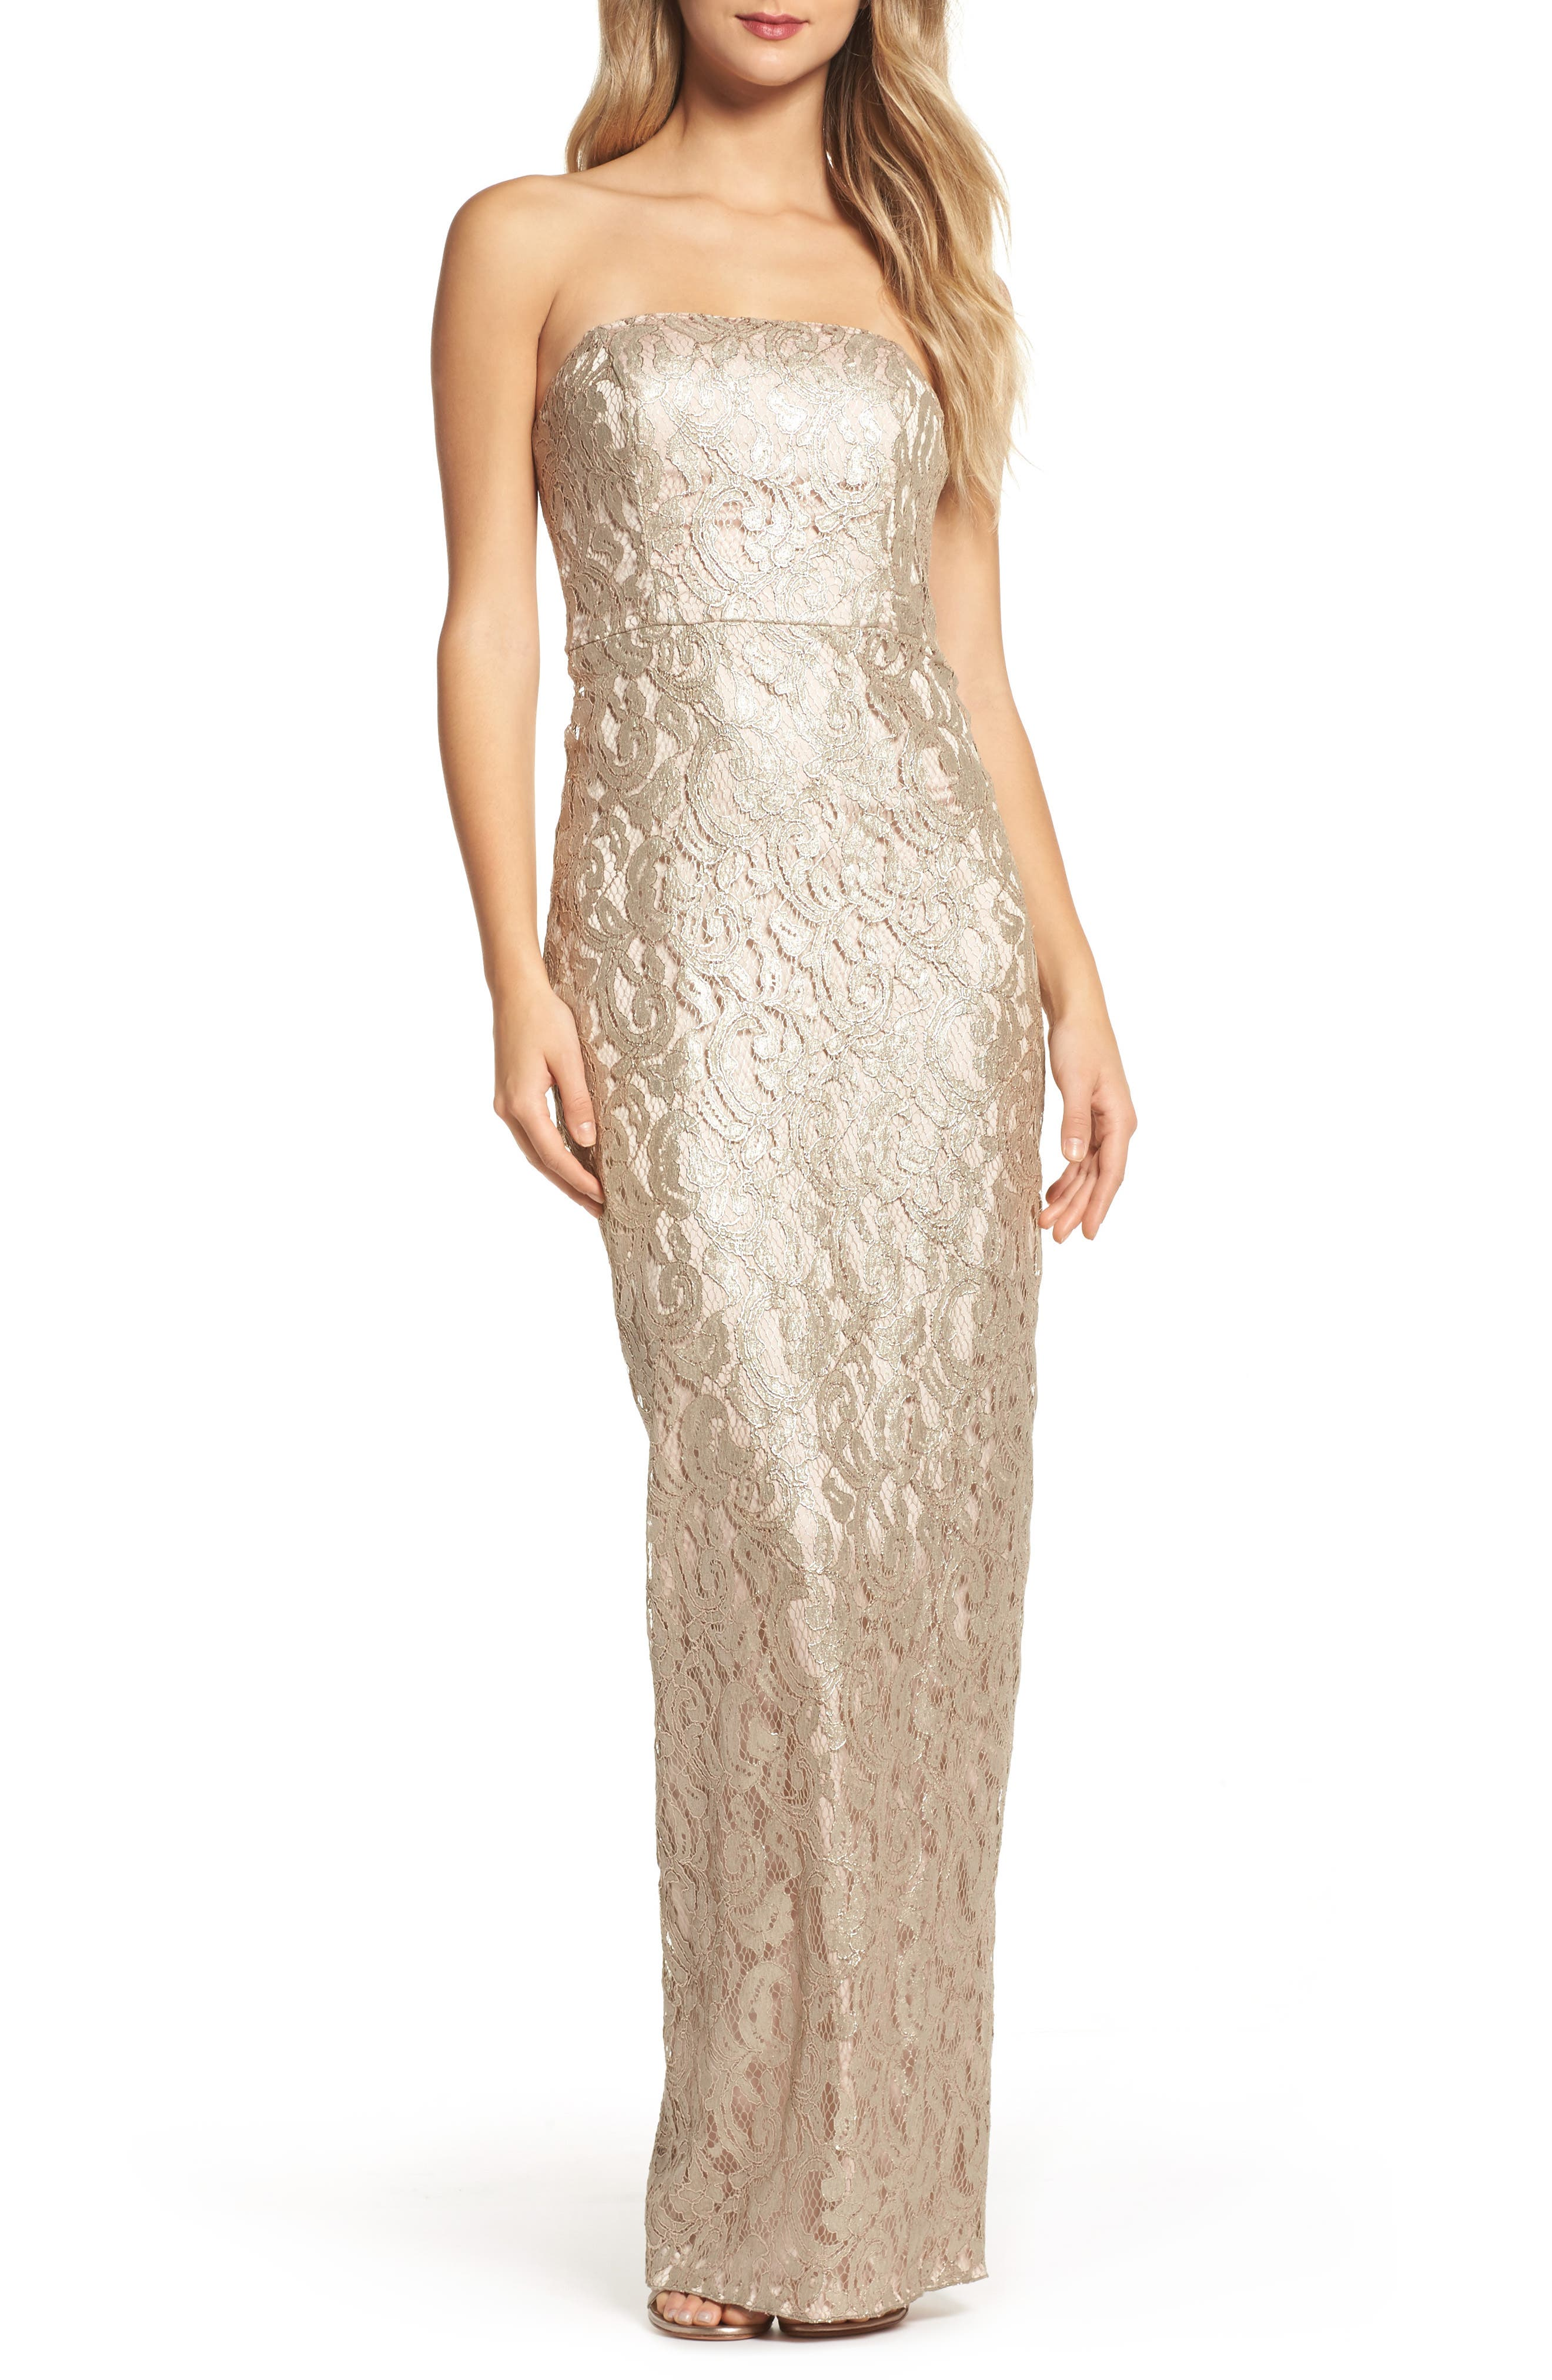 Starla Ruffle Back Strapless Lace Gown,                             Main thumbnail 1, color,                             Gold